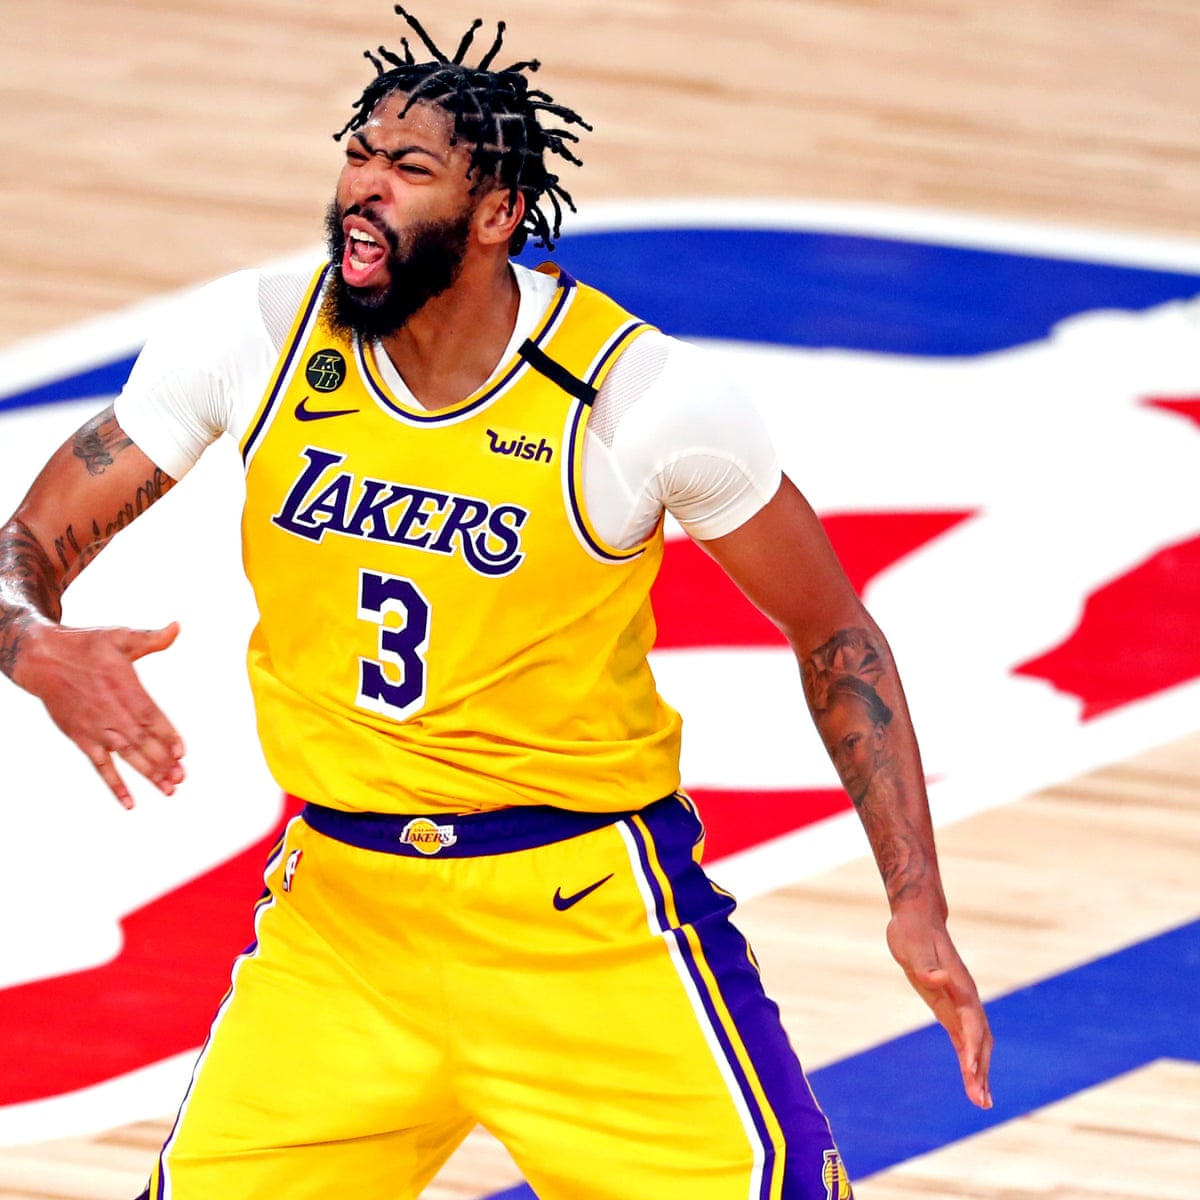 Nba Finals Game 4 La Lakers Cool Miami Heat To Move Within One Win Of Title Nba Finals The Guardian